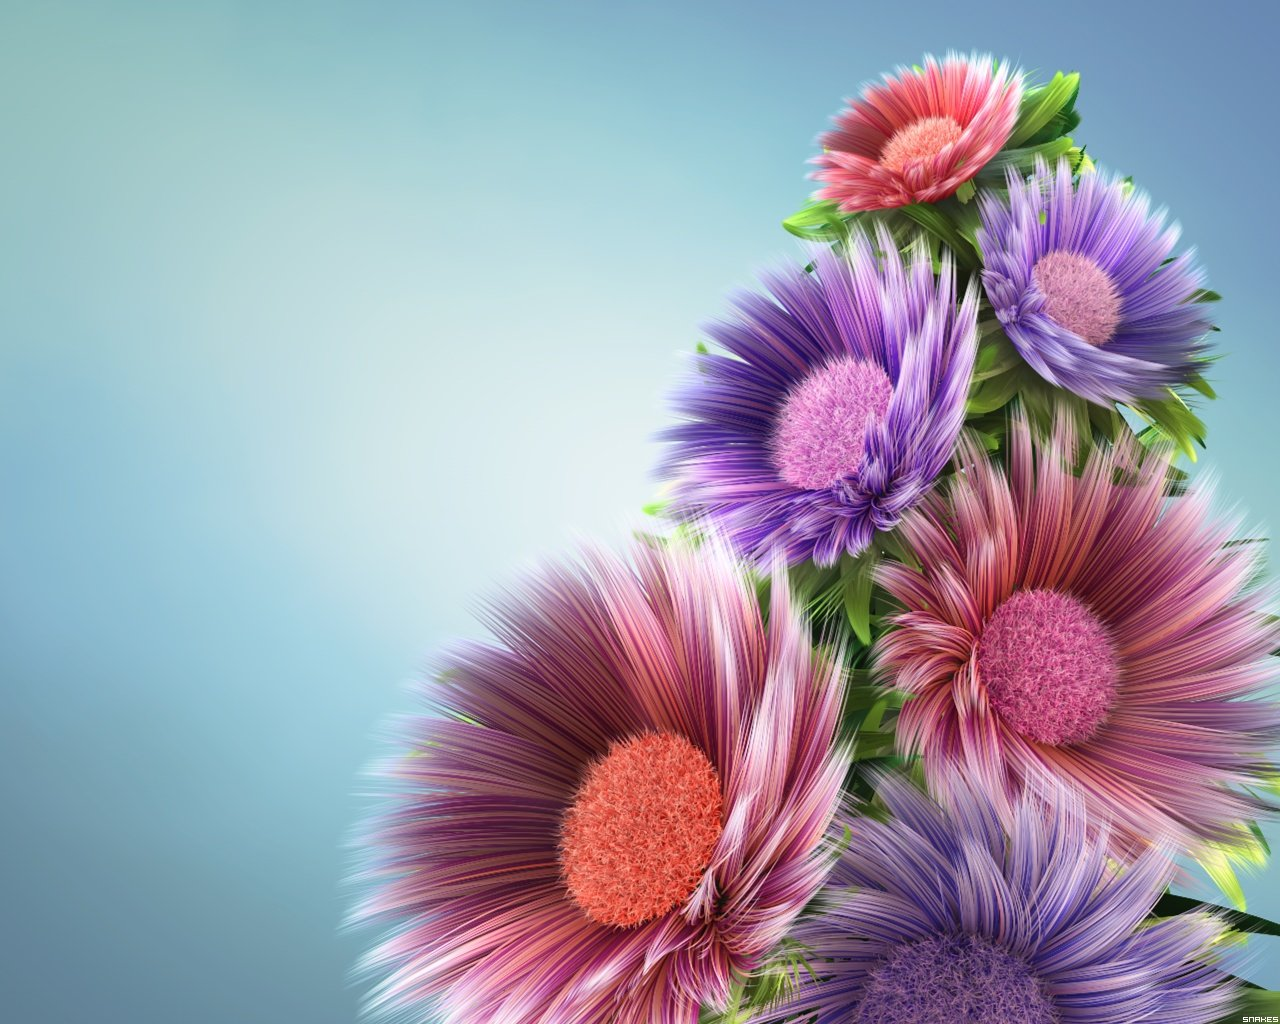 Flowers Desktop Download Desktop   1280x1024 iWallHD 1280x1024